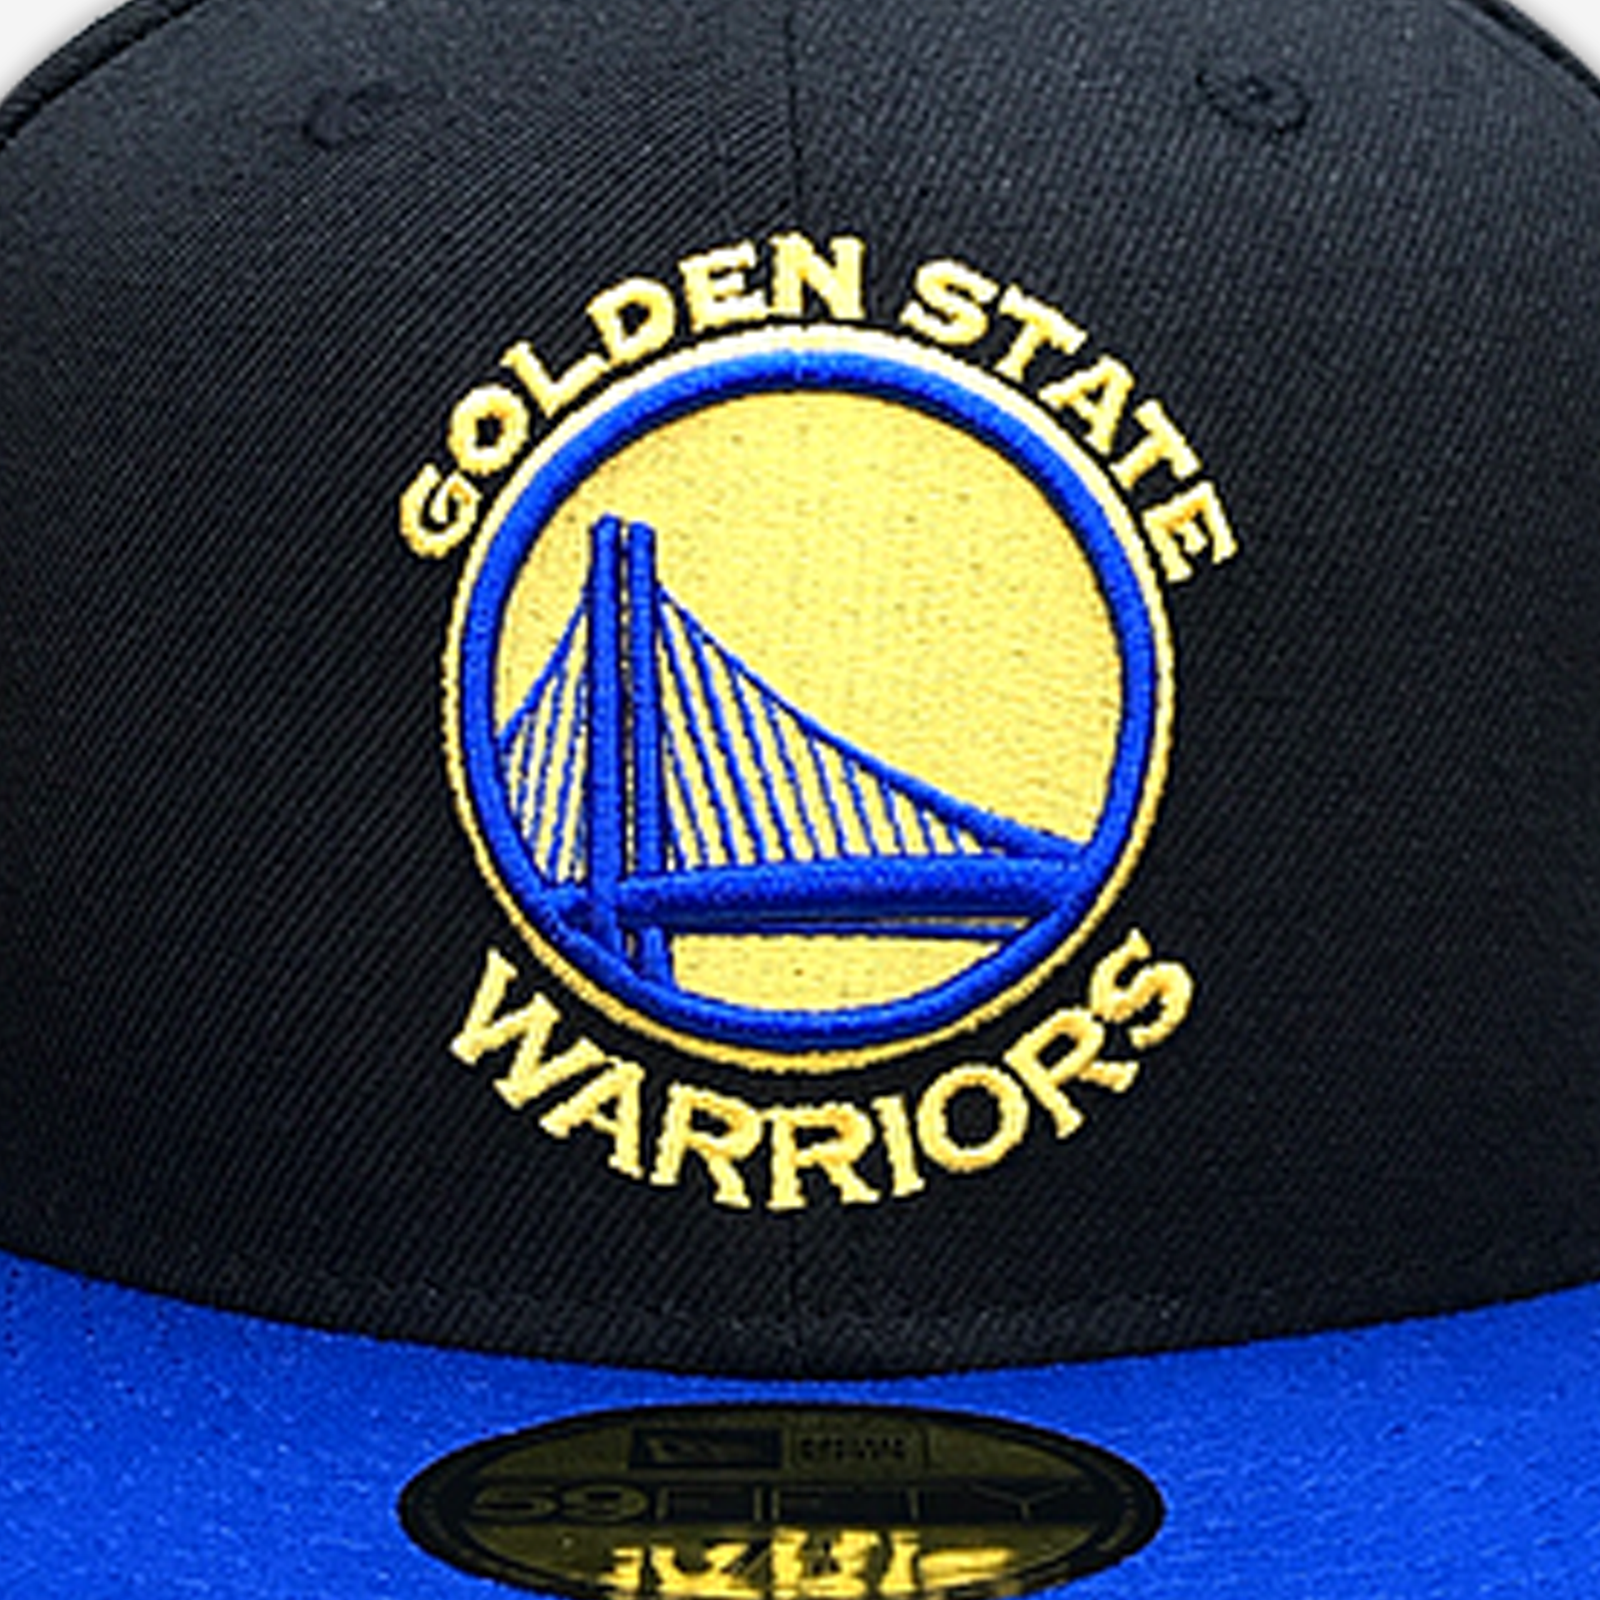 Golden State Warriors 5x Champs New Era Fitted